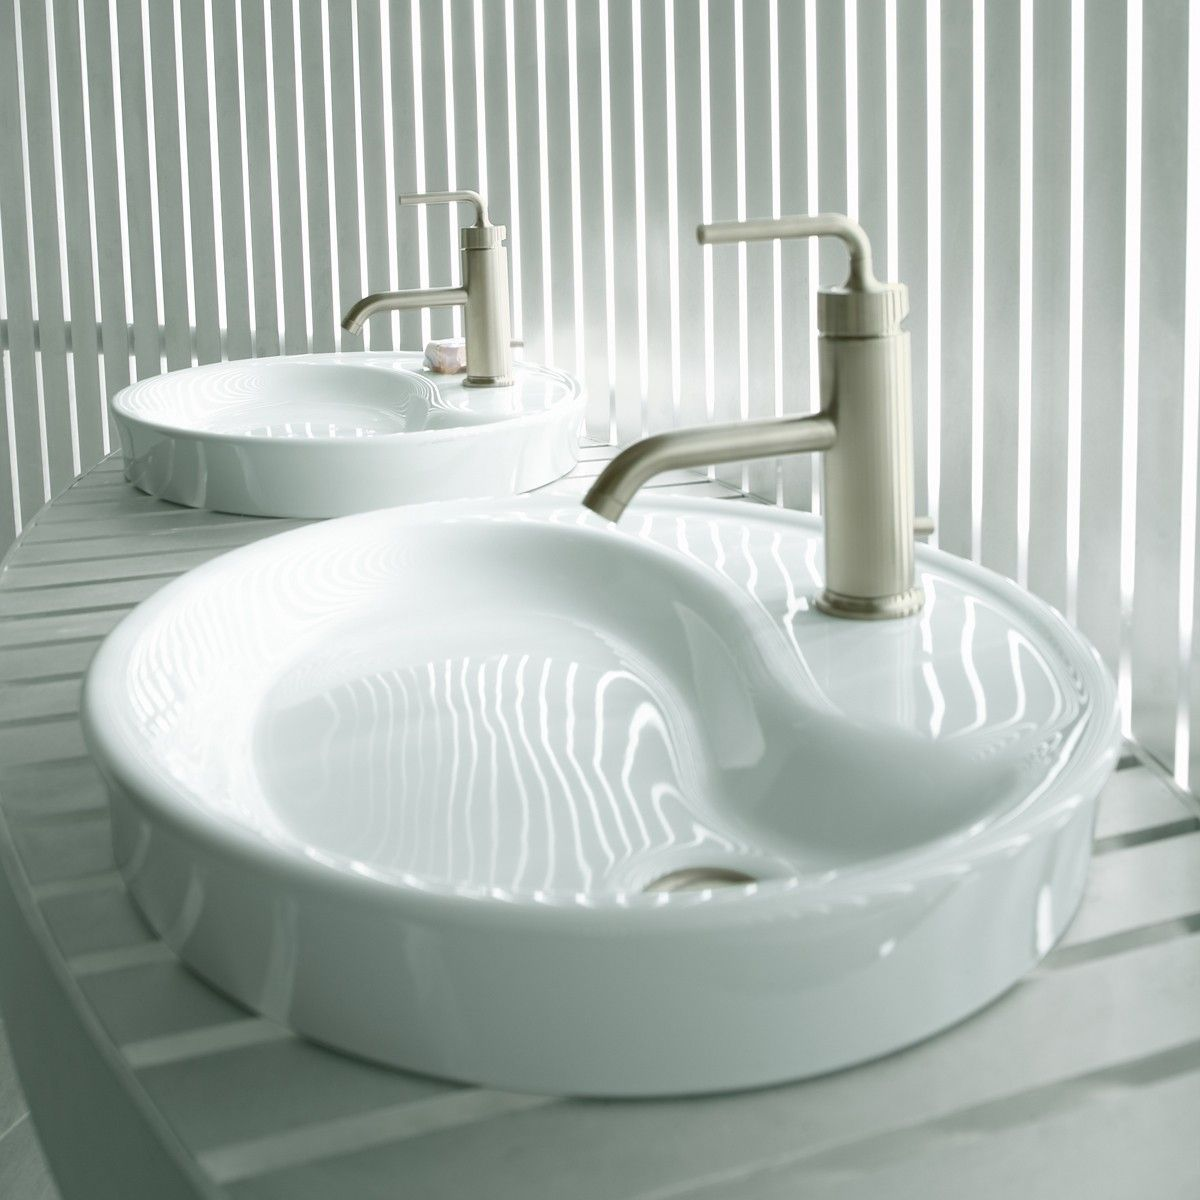 Bring modern appeal and functionality to your bathroom with the ...